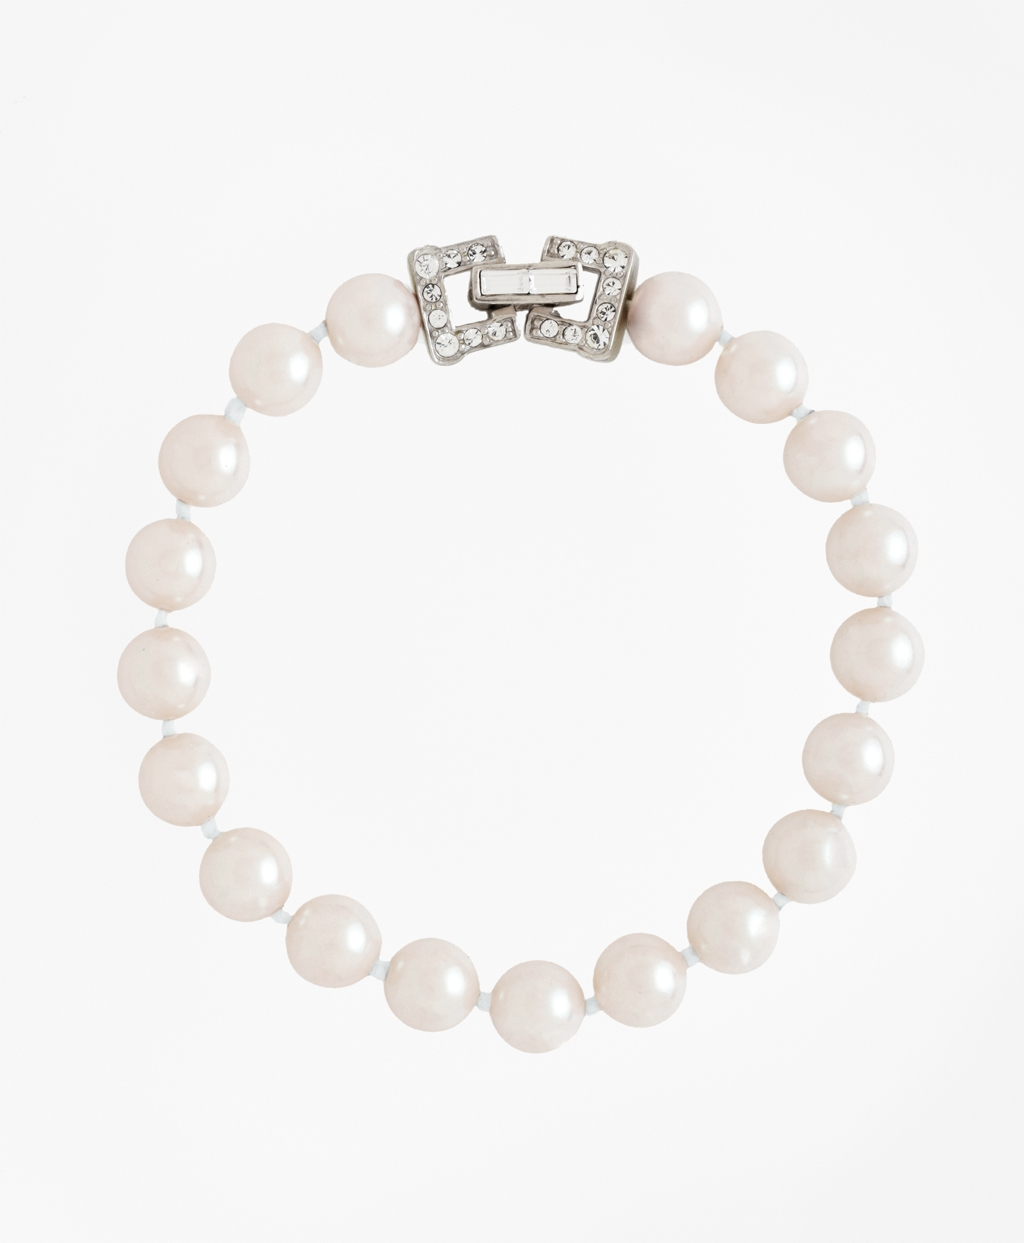 1930s Jewelry | Art Deco Style Jewelry Brooks Brothers Womens Glass Pearl Bracelet $148.00 AT vintagedancer.com